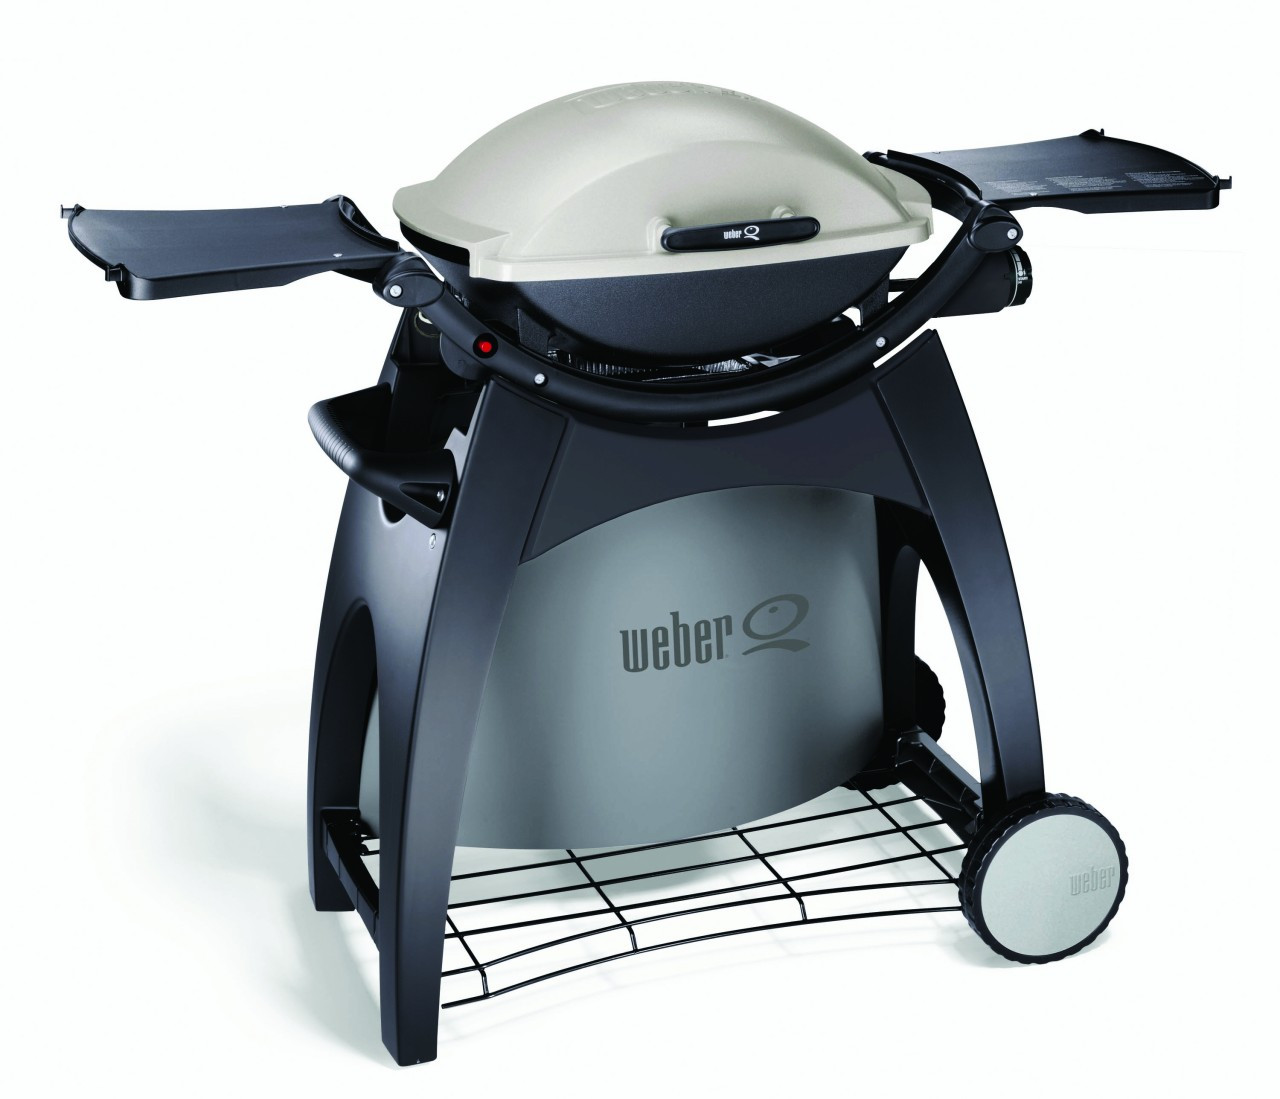 weber q stationary cart 8460 only suits old q200 model. Black Bedroom Furniture Sets. Home Design Ideas